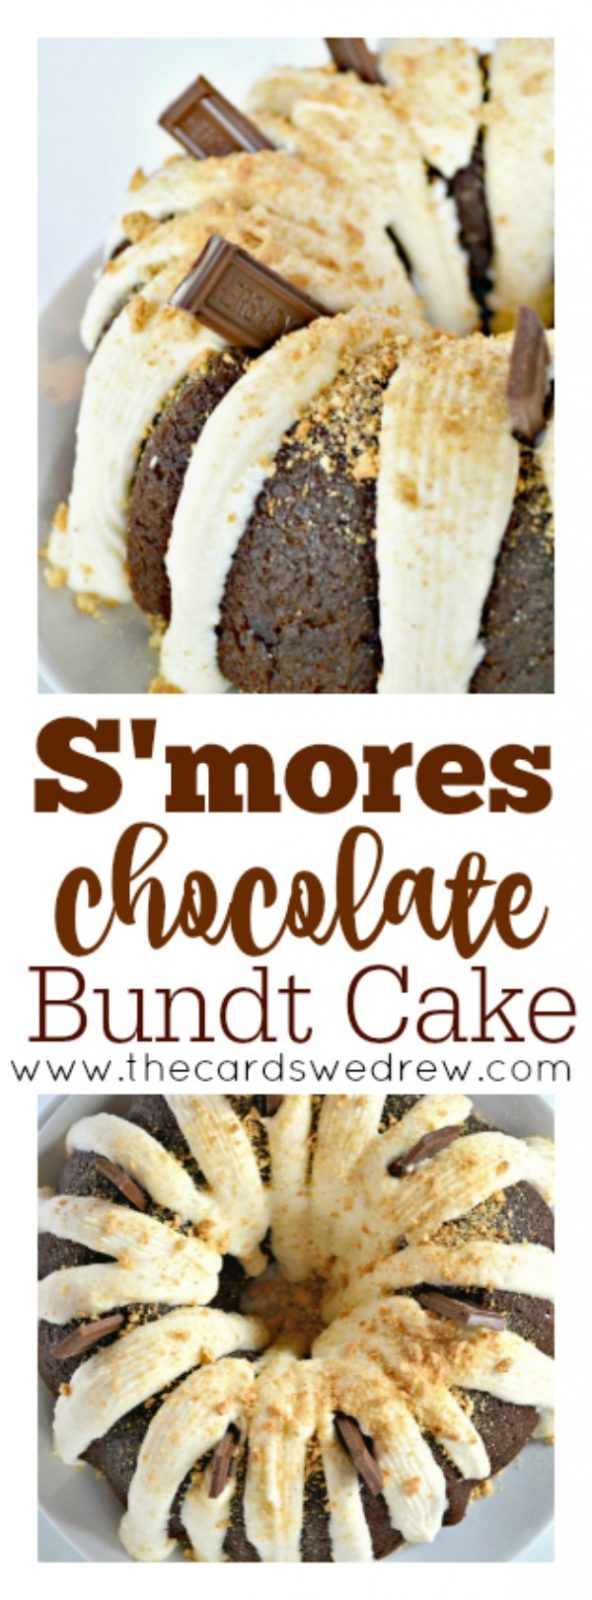 S'mores Chocolate Bundt Cake recipe